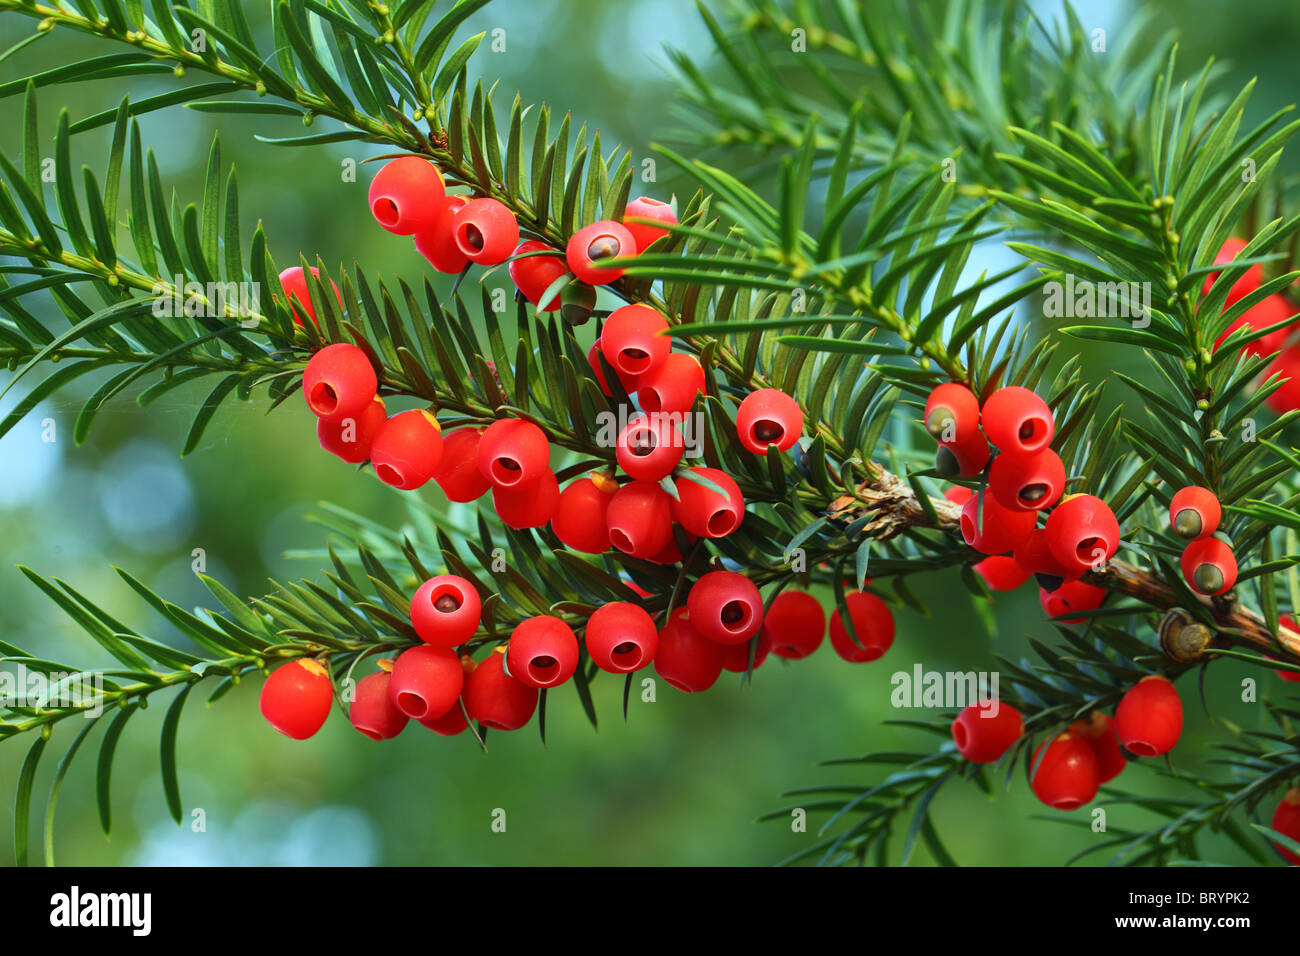 eibe baum rote beeren auf einem zweig taxus baccata stockfoto bild 31957942 alamy. Black Bedroom Furniture Sets. Home Design Ideas